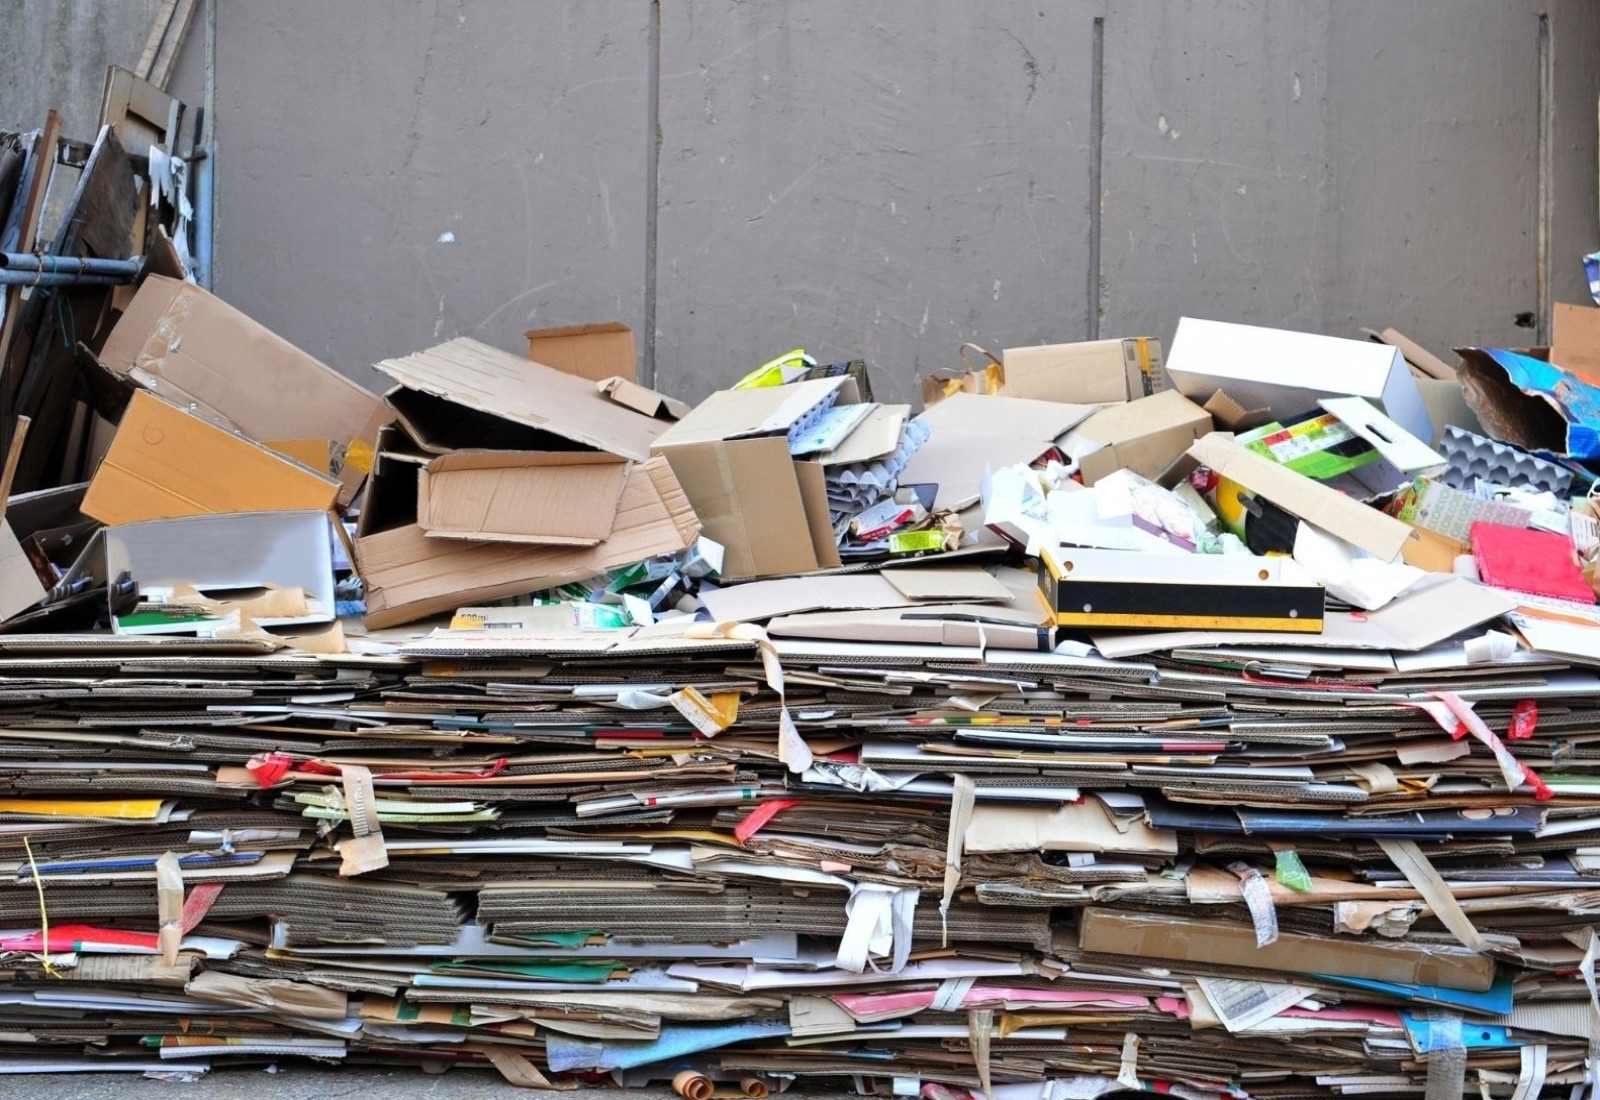 Waste removal and disposal junk rubbish